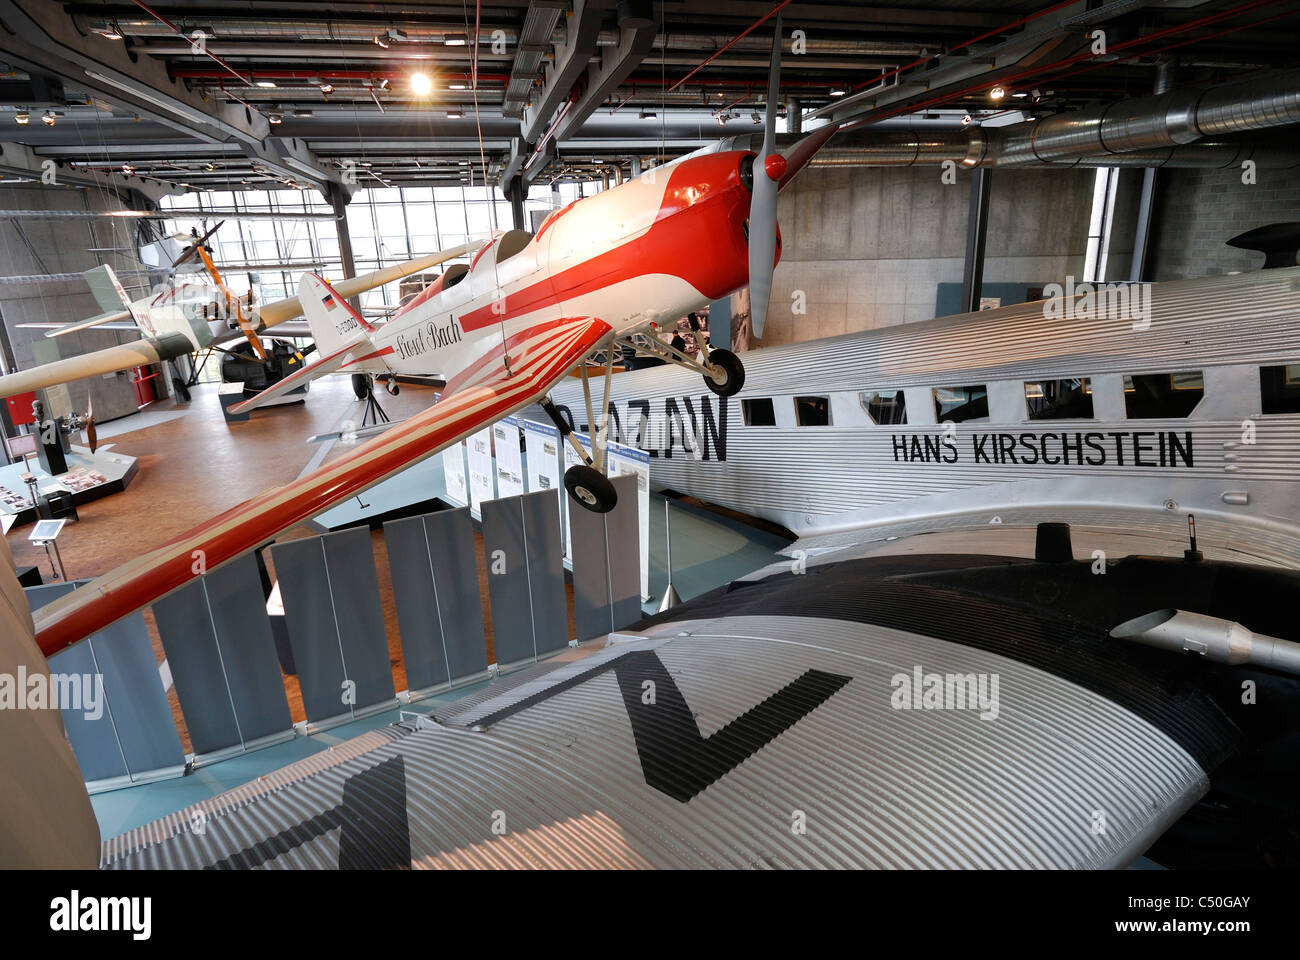 Berlin. Germany. The aviation hall in the Deutsches Technikmuseum / German Museum of Technology. - Stock Image